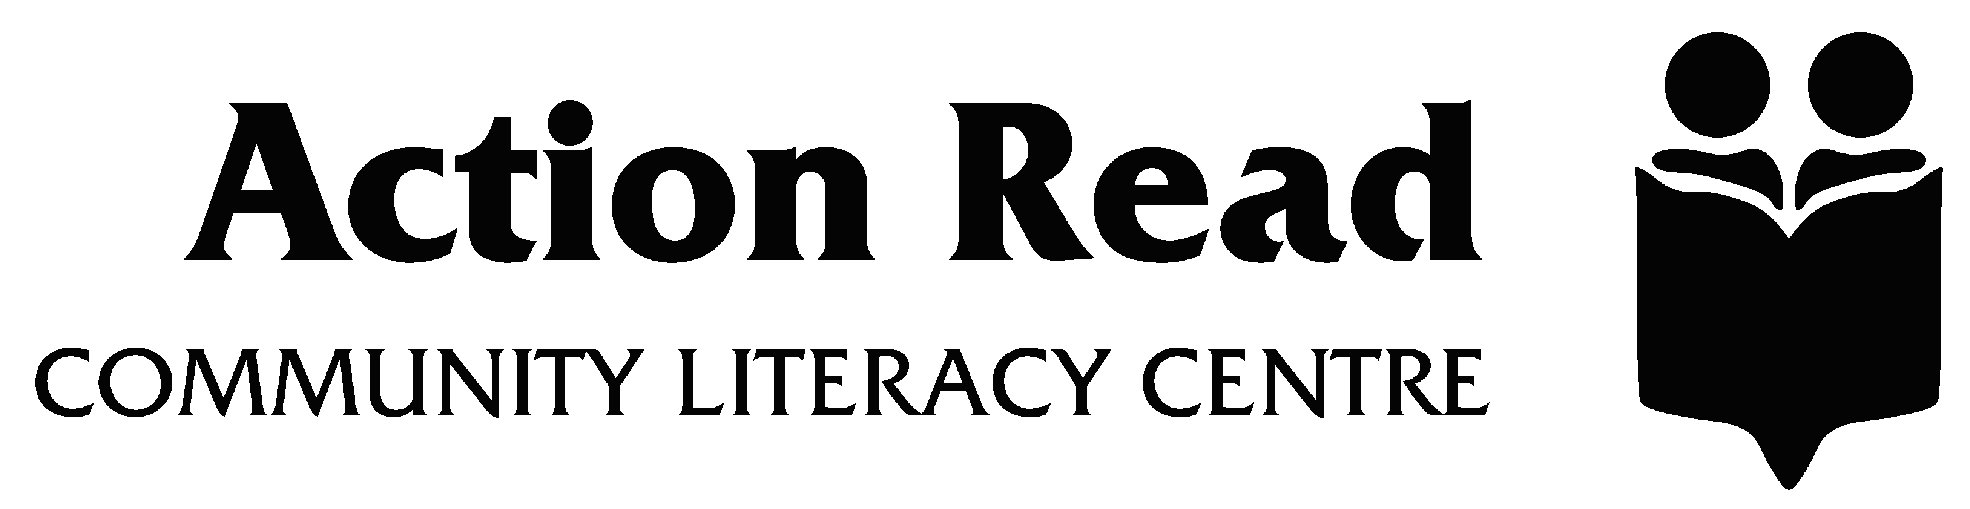 Action Read Logo